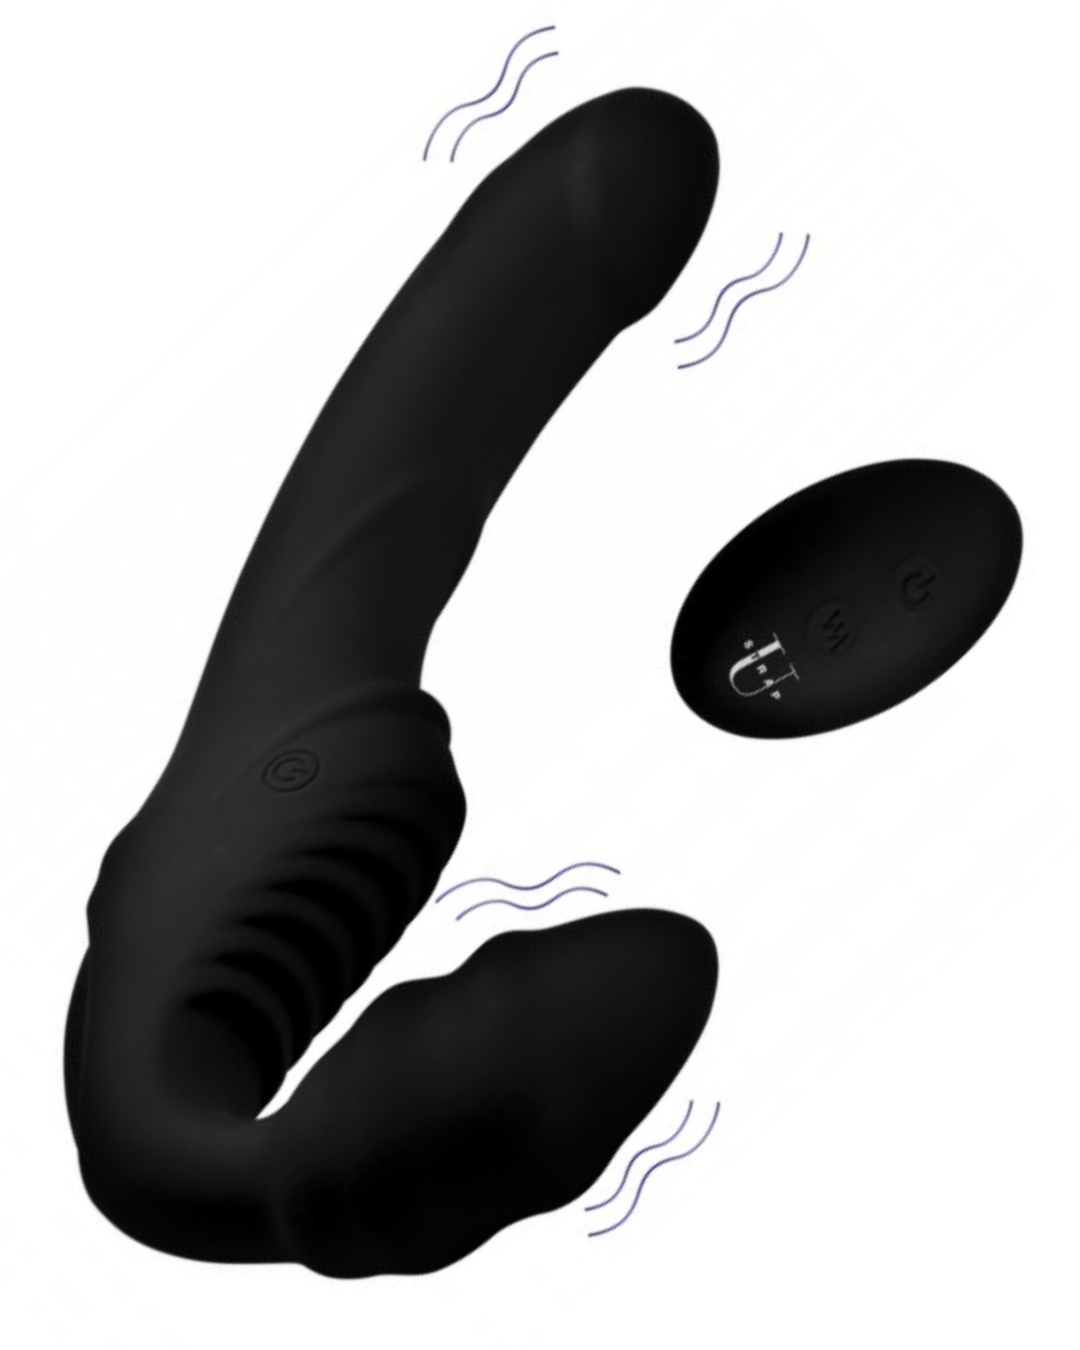 Pro Rider Vibrating Silicone Strapless Strap-On with Remote Control